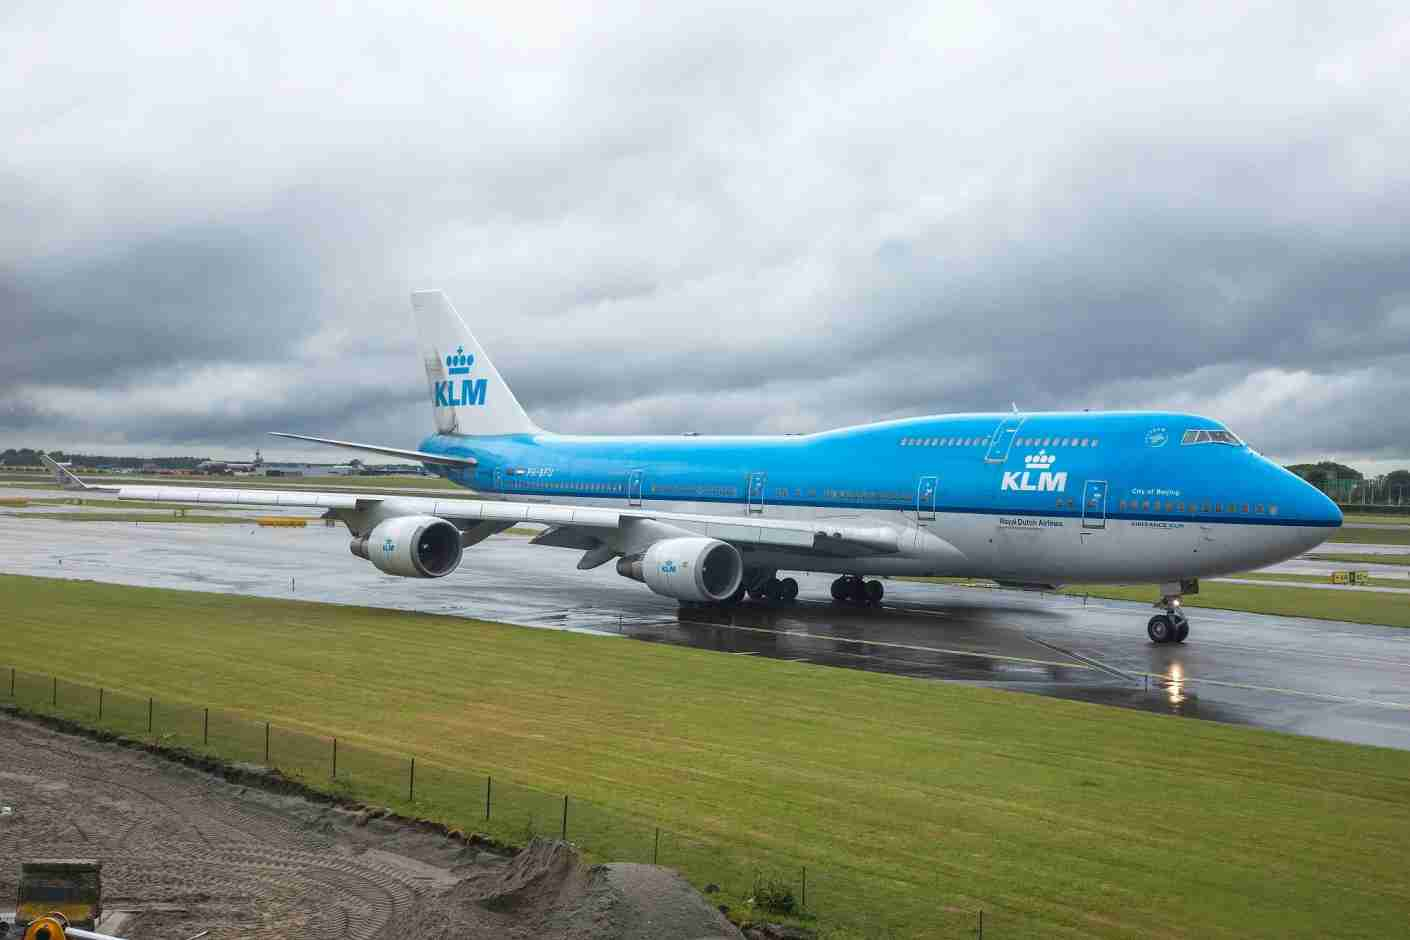 With KLM, you can fly your pet to Europe on a 747 like this one (Photo by Nicolas Economou/NurPhoto via Getty Images)